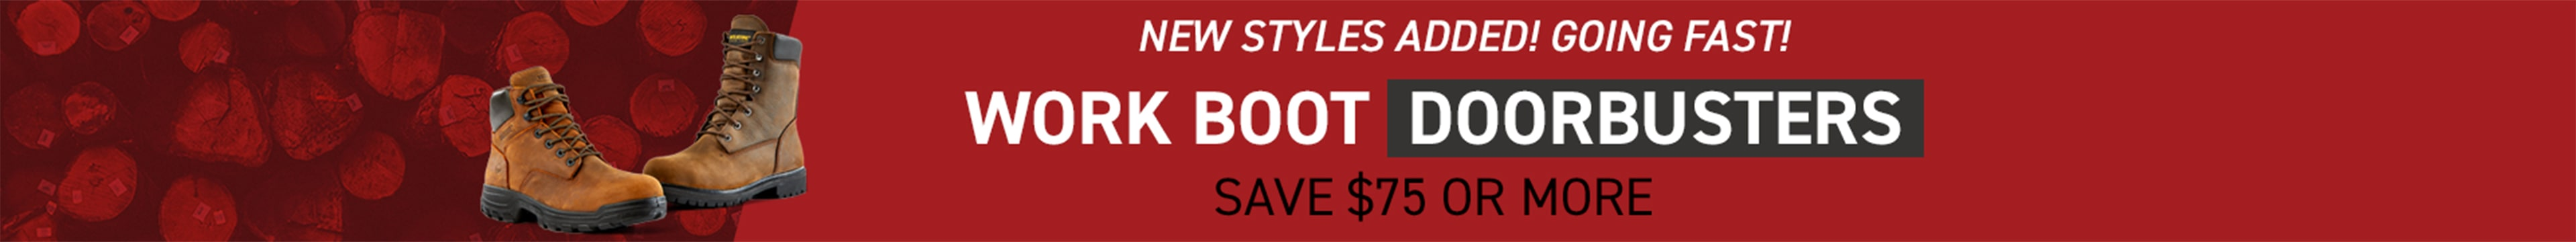 Work Boot Doorbusters.  Save $75 or more.